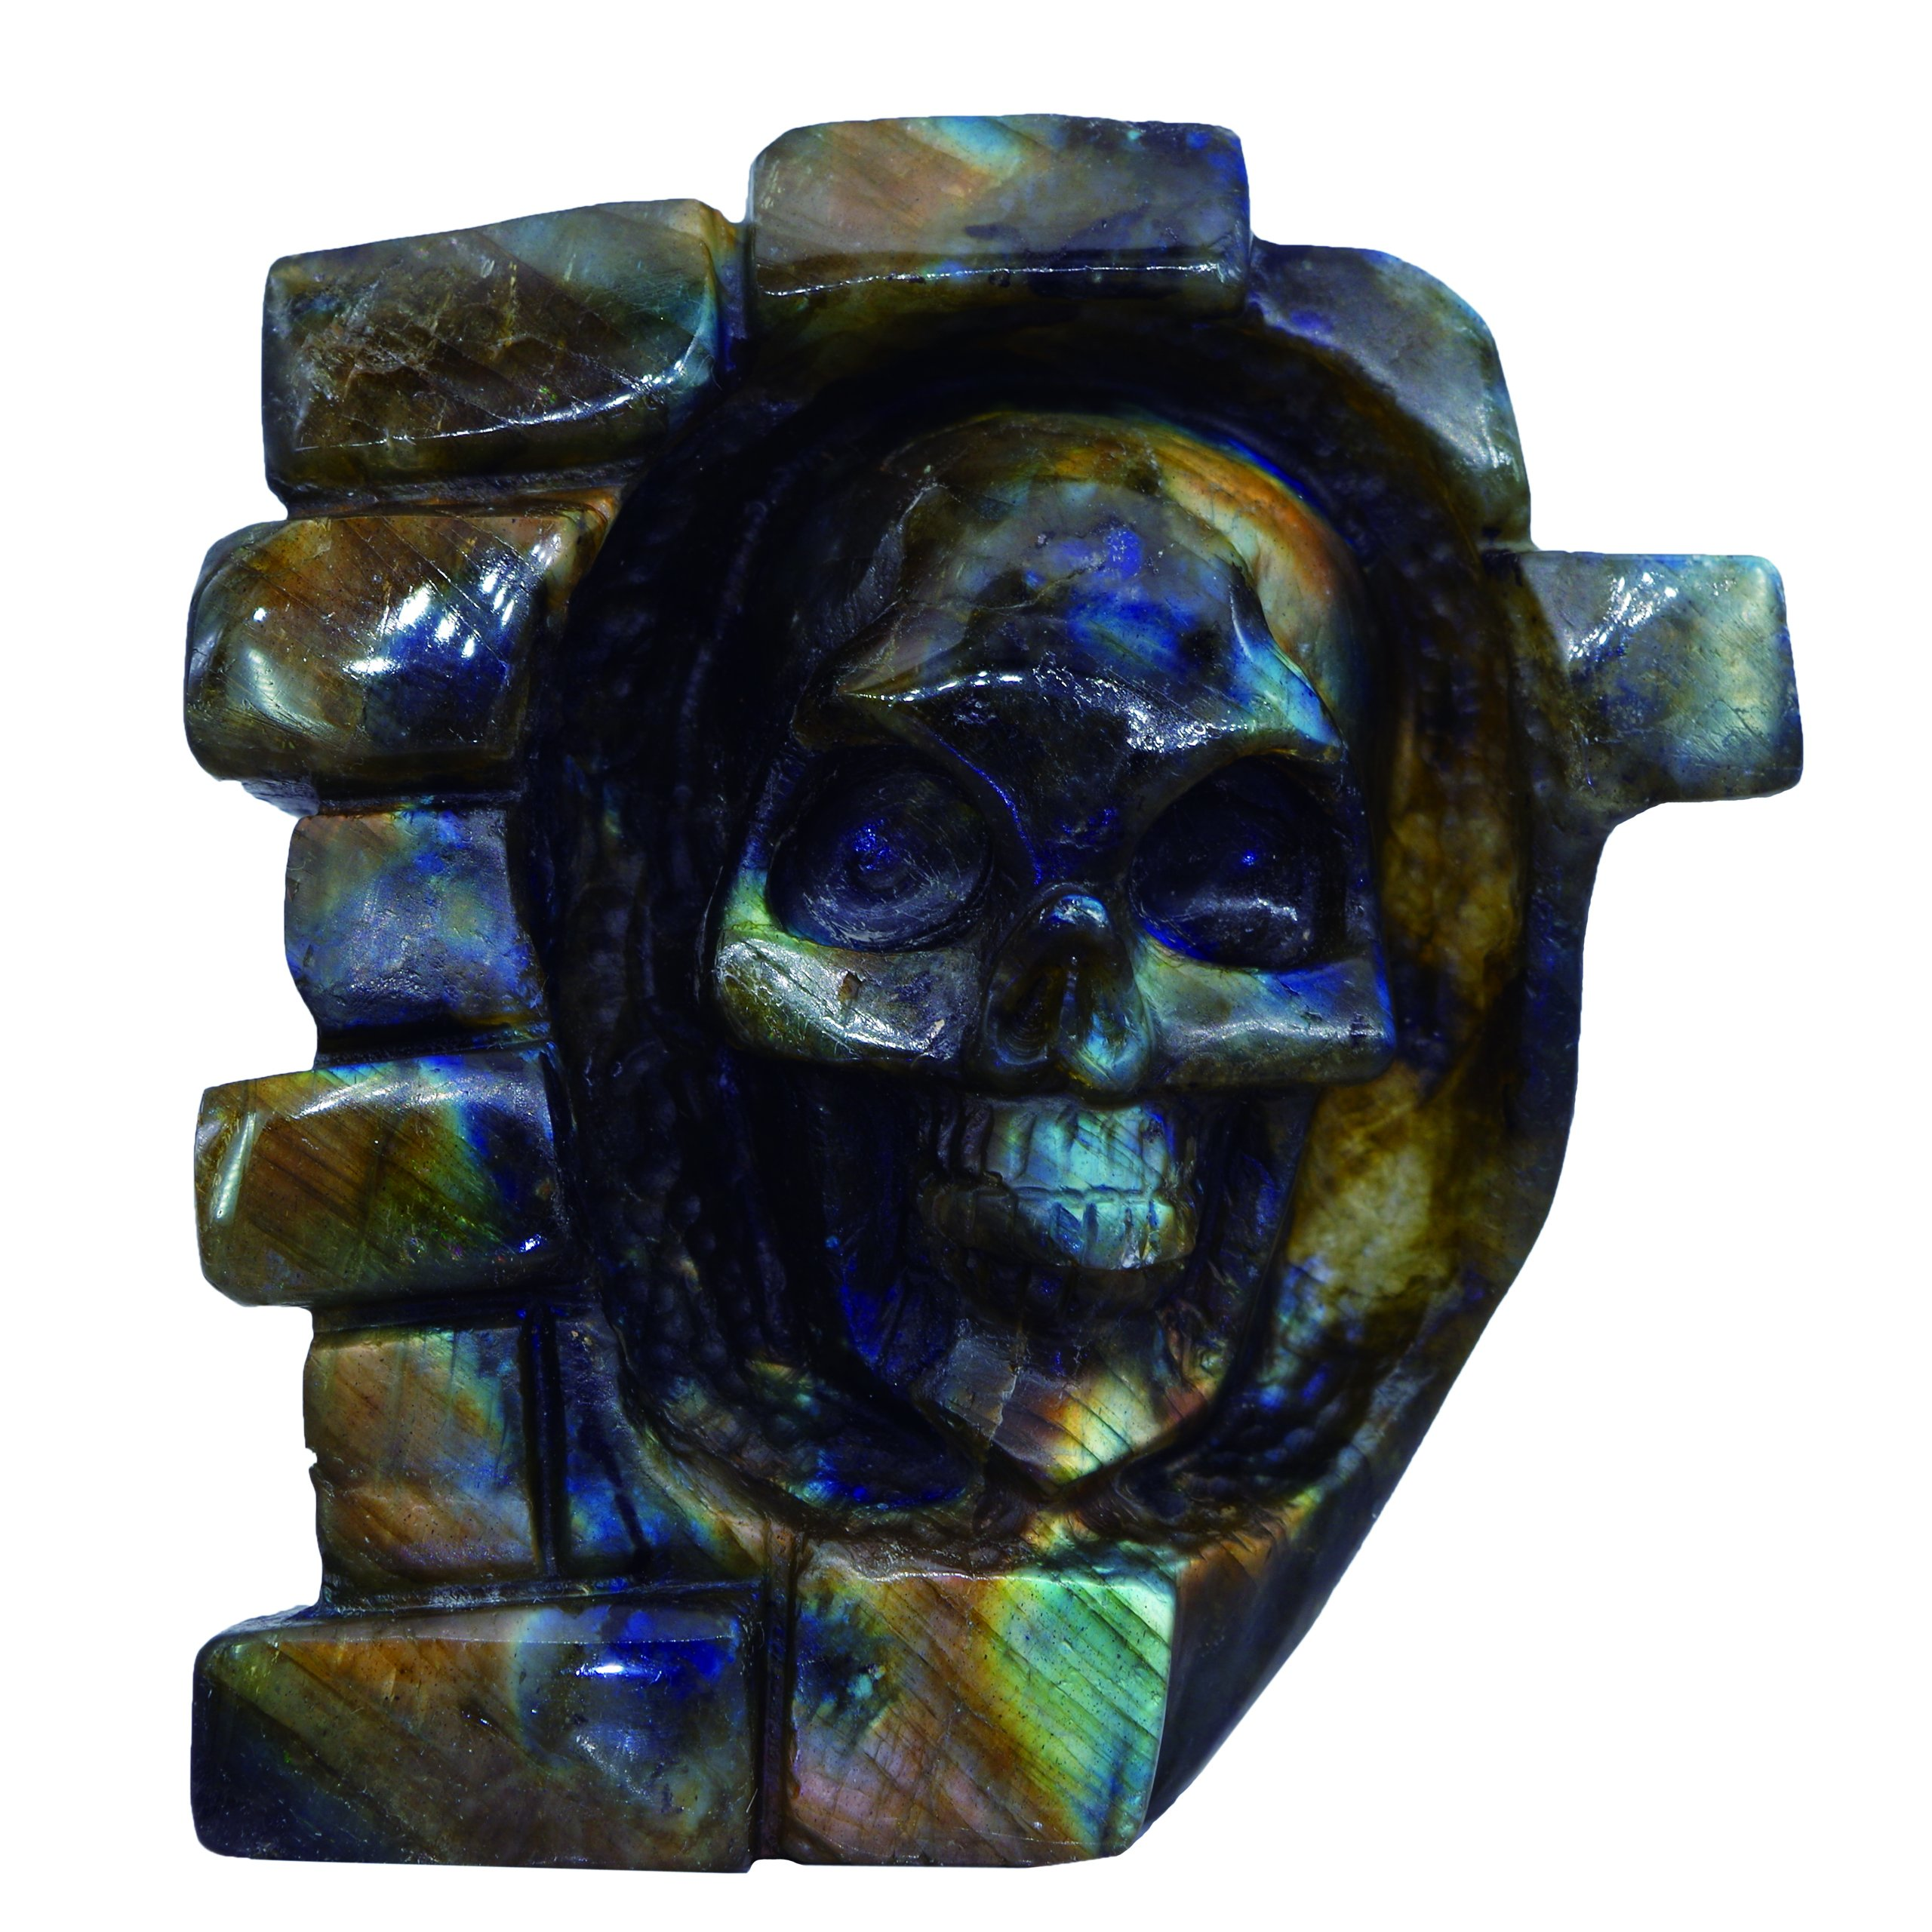 NATURSTON Gothic Skull Carving Sculpture Natural Labradorite Mens Statue Biker Decorations (Gold-3.1'')